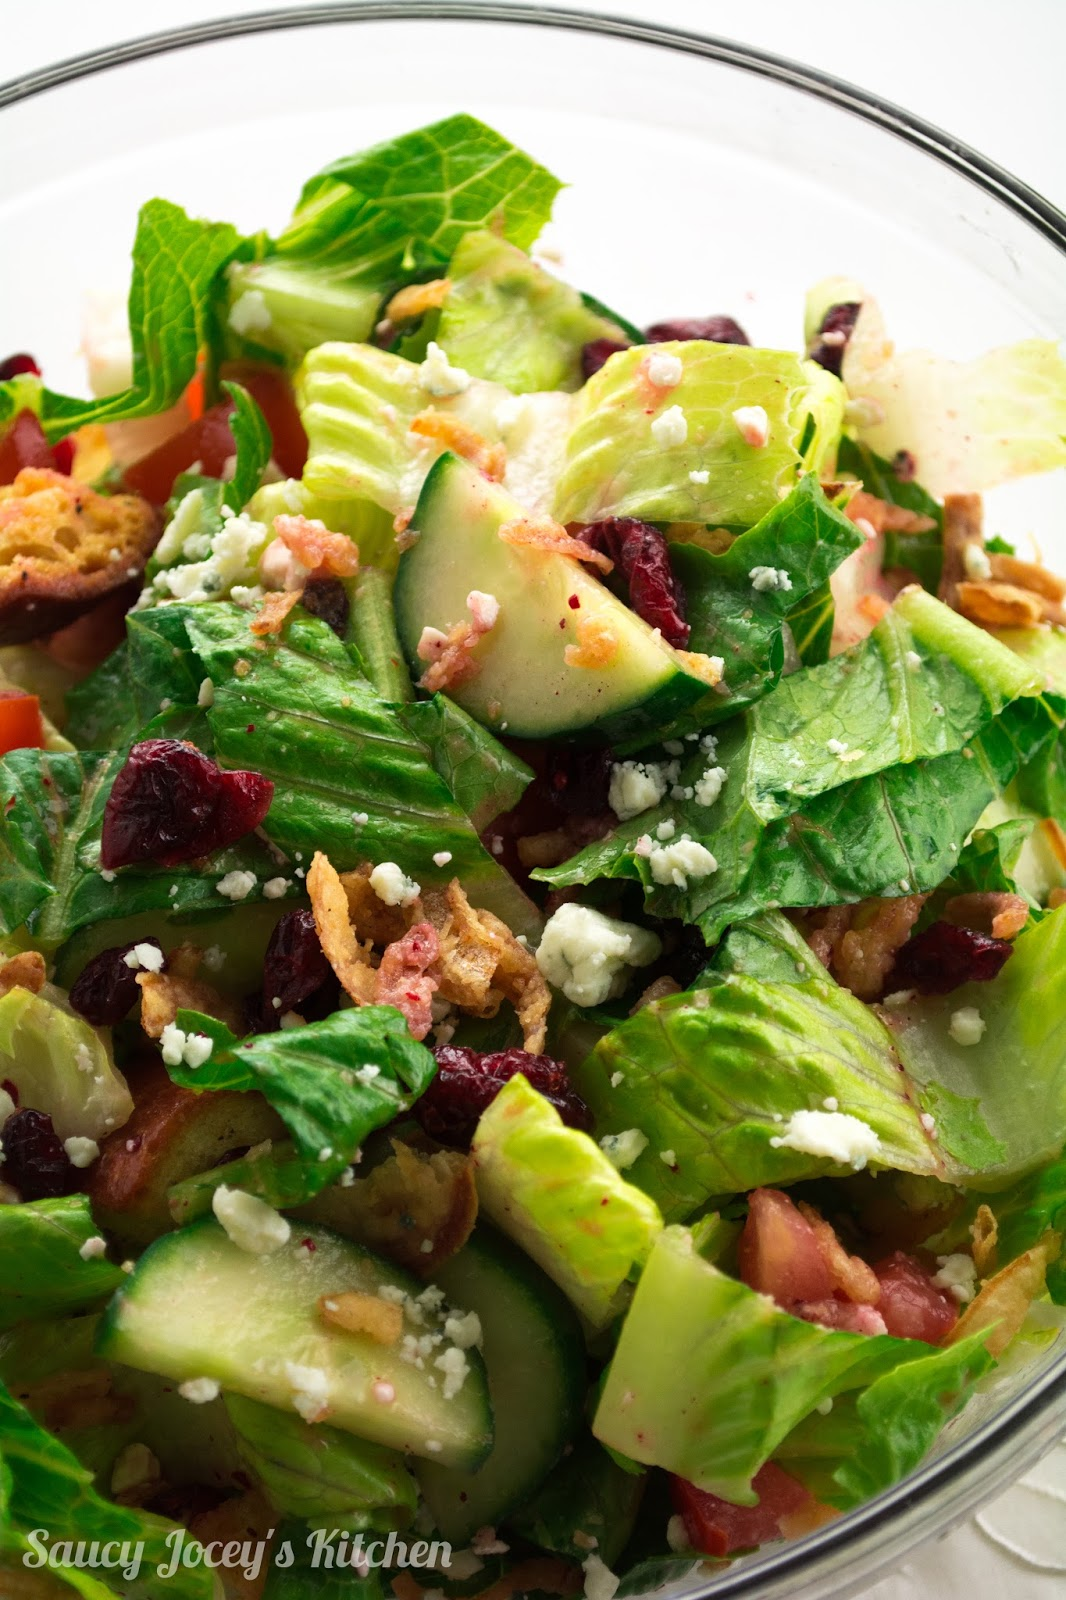 Sweet raspberry dressing, tangy blue cheese, tart dried cranberries, and salty french fried onions create the perfect flavor combination in this easy and versatile salad!